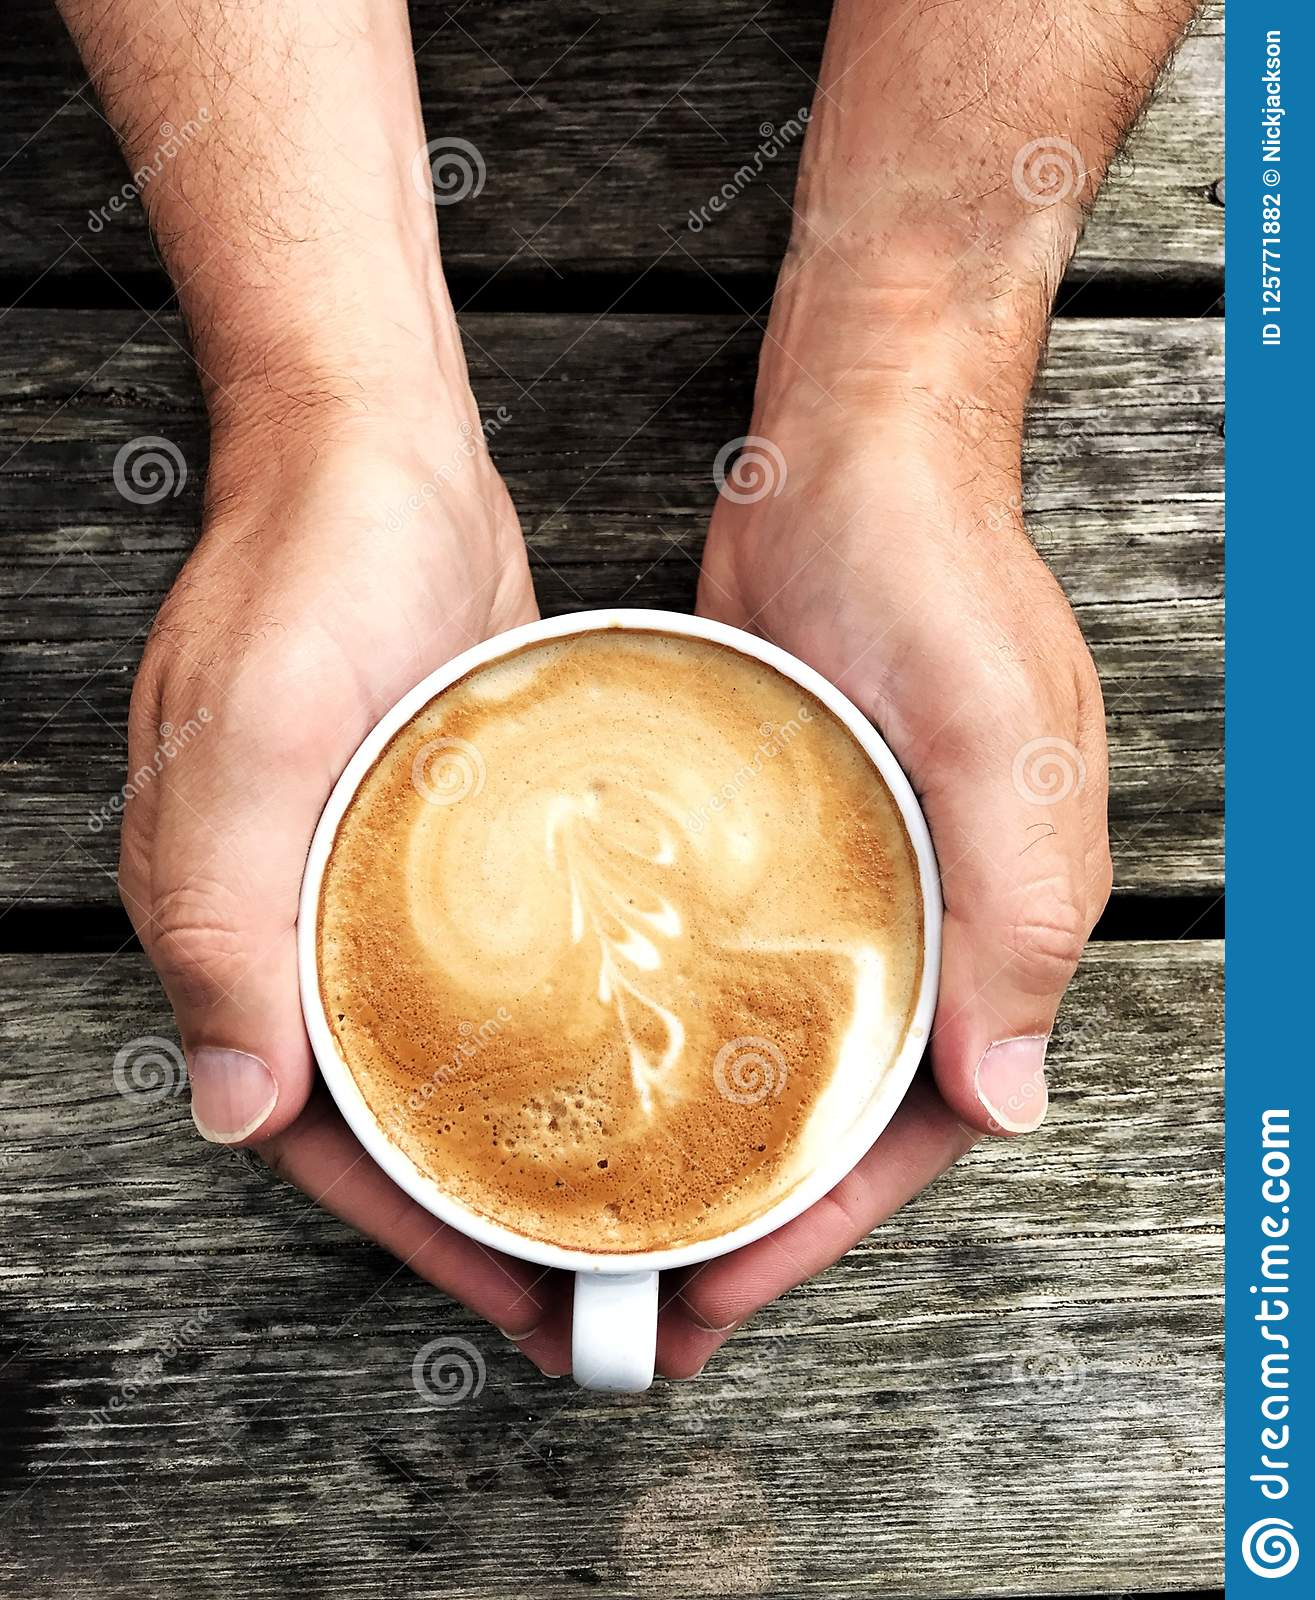 Hands Holding Coffee Cup Stock Photo Image Of Comfort